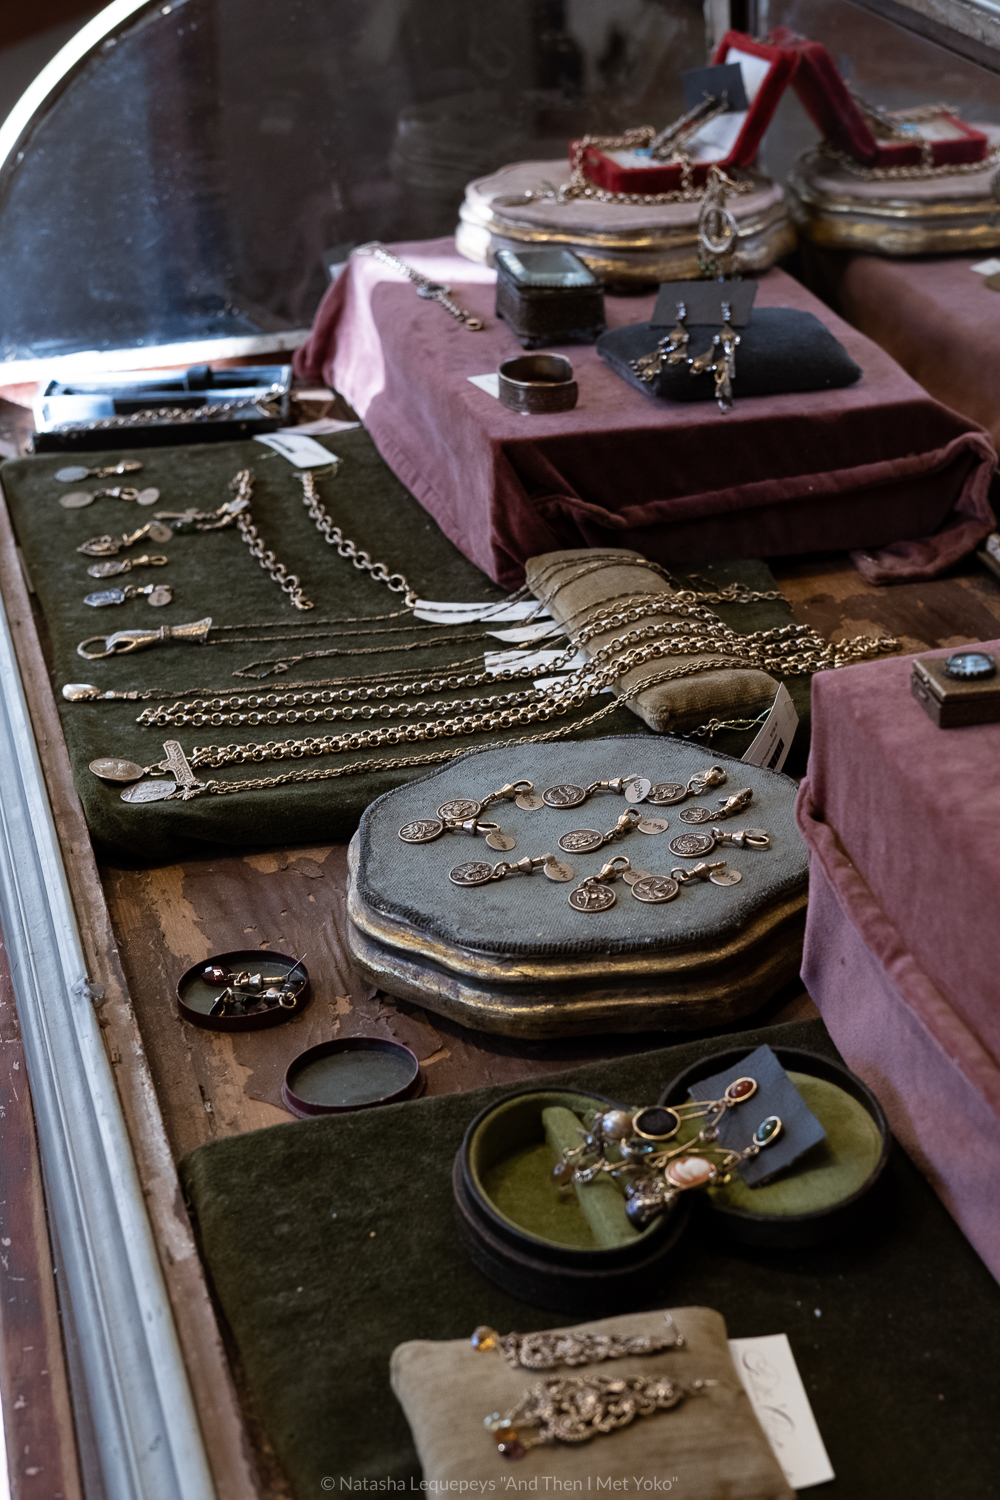 "Jewelry at the Paris Market in Savannah, GA. Travel photography and guide by © Natasha Lequepeys for ""And Then I Met Yoko"". #savannah #usa #travelguide #shoppingguide"